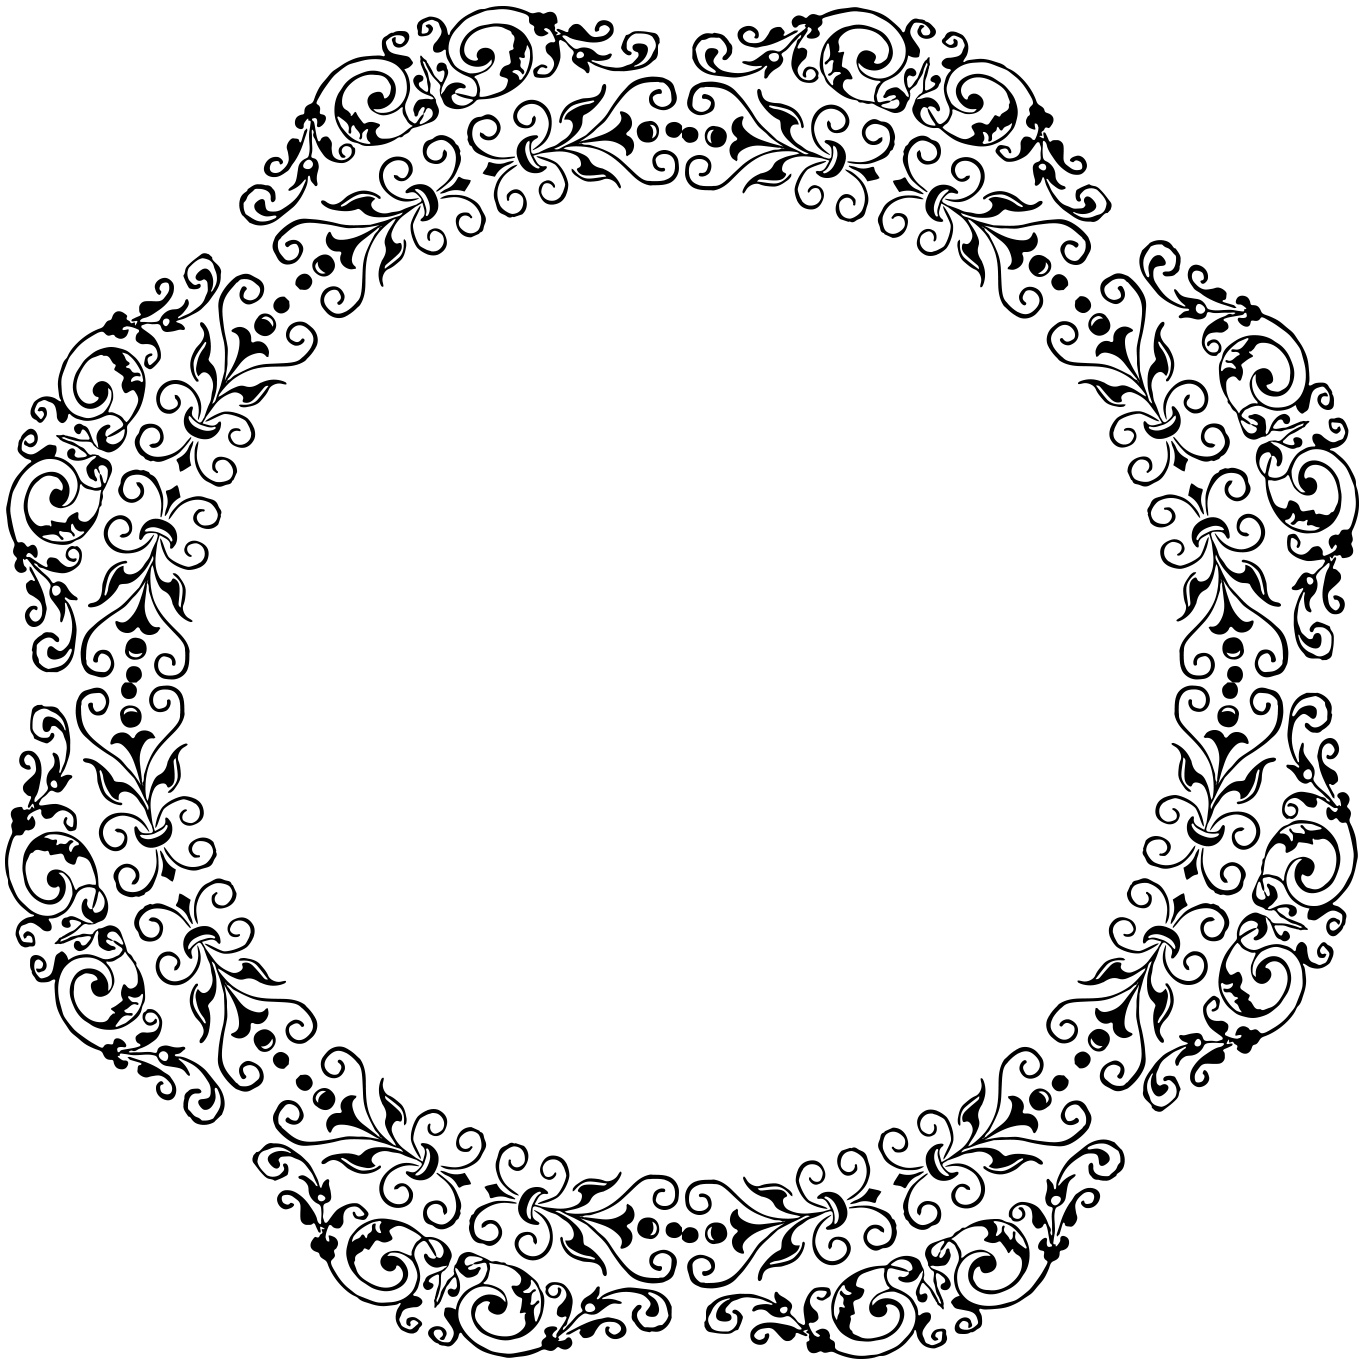 Free Circle Borders Png, Download Free Clip Art, Free Clip Art on.